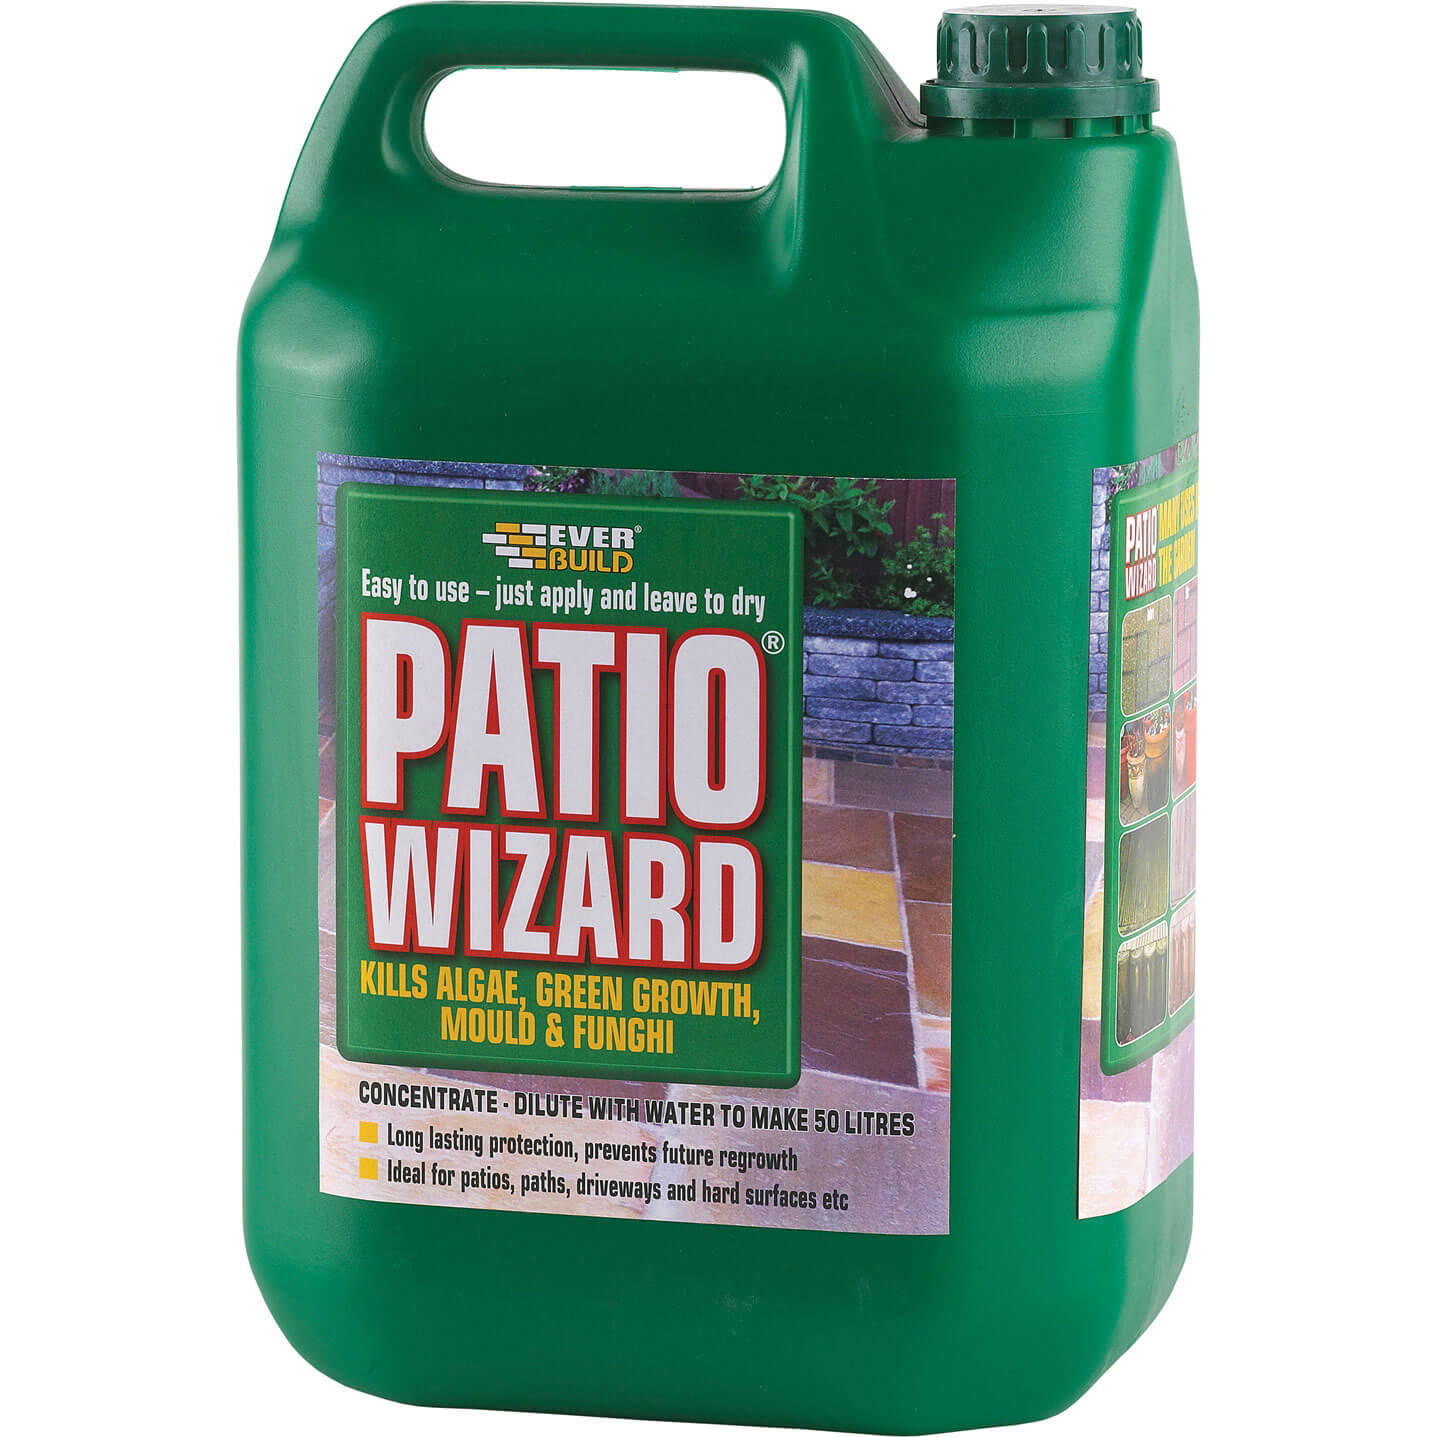 Image of Everbuild Patio Wizard Algae, Green Growth, Mould & Fungus Remover Concentrate 5L